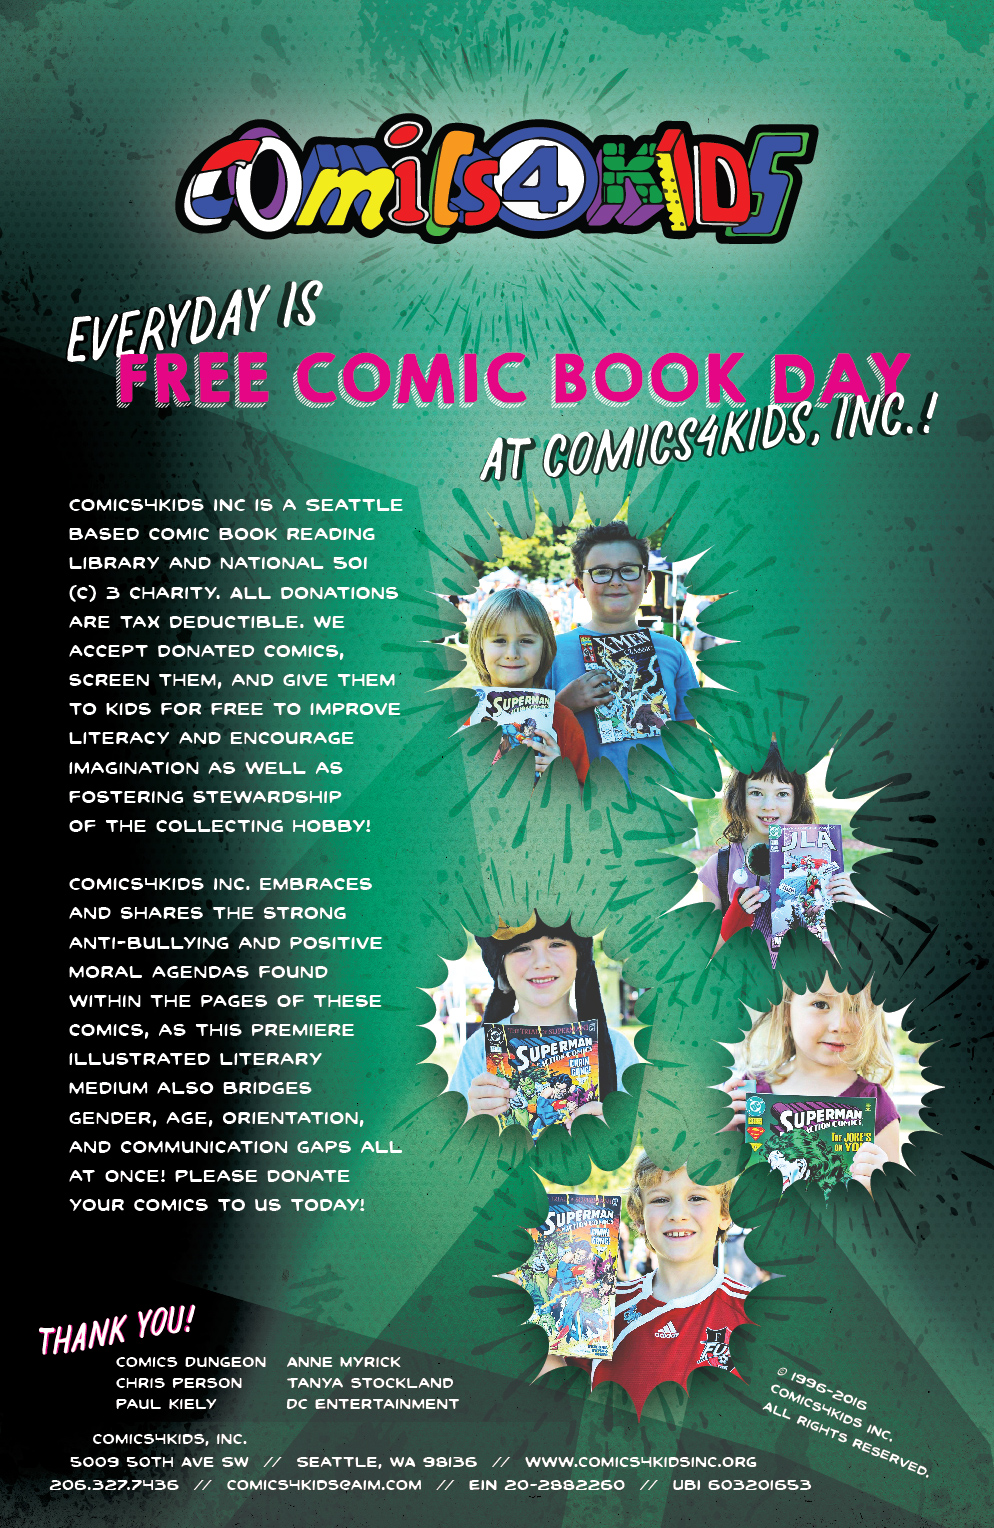 DONATE YOUR COMICS TODAY!